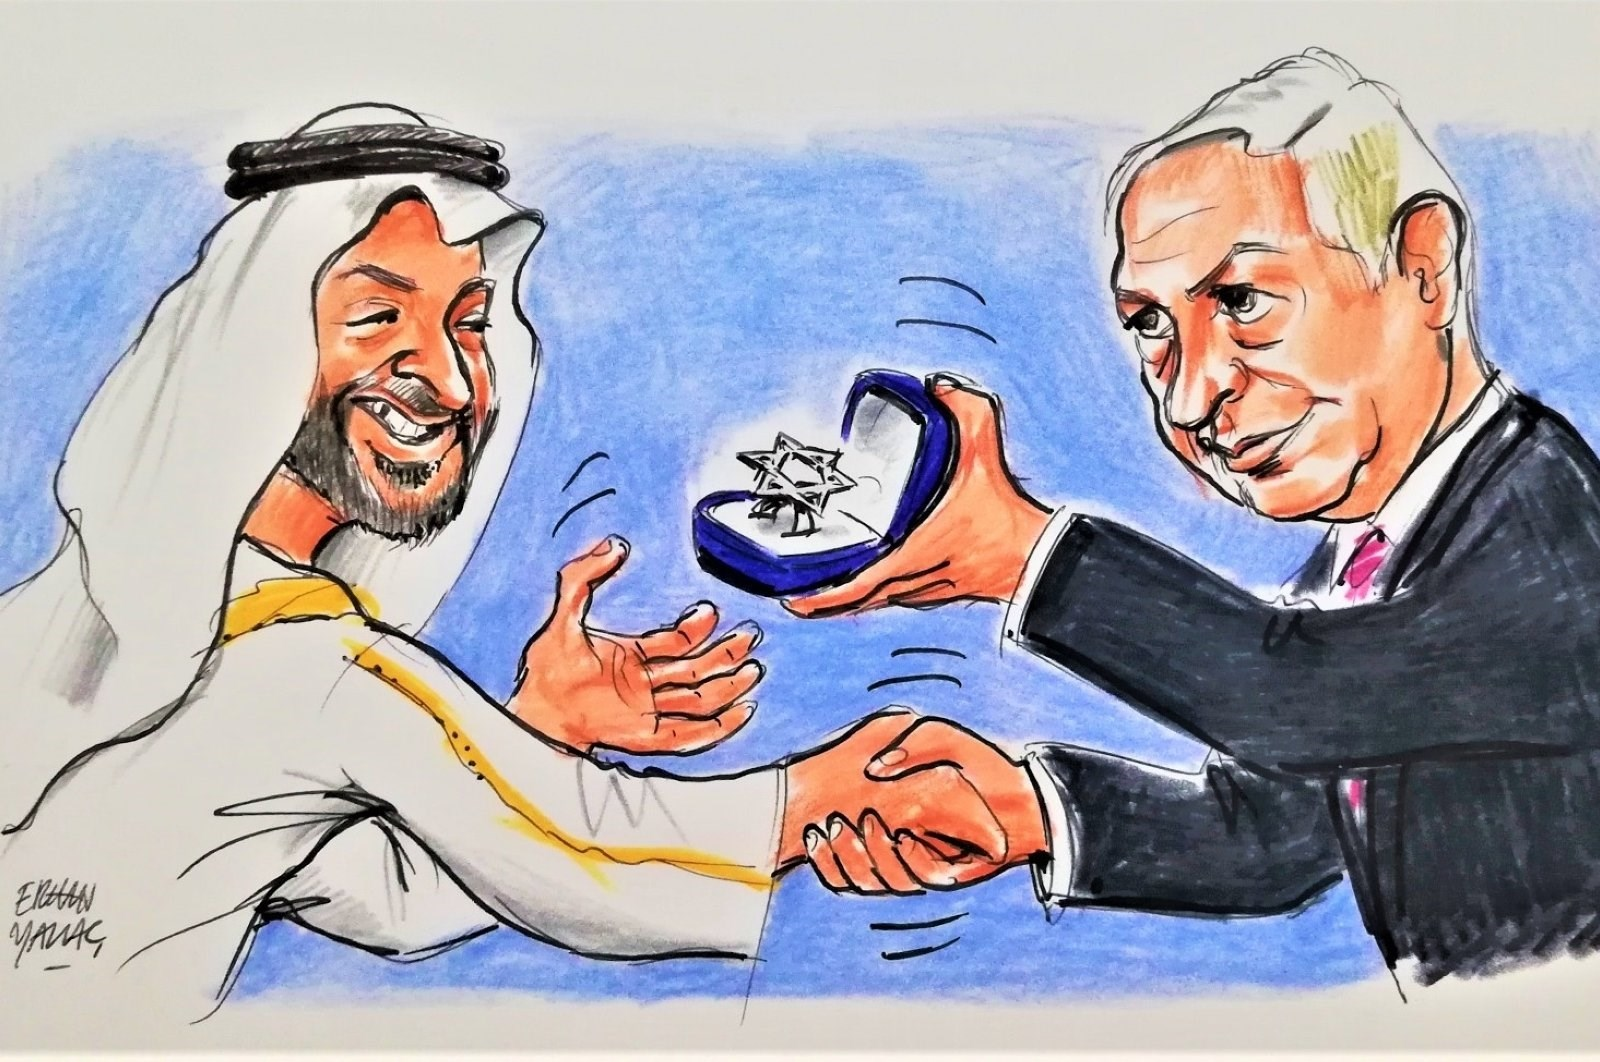 UAE Plans Economic Stretch with 'Israel' Up to $1 Trillion